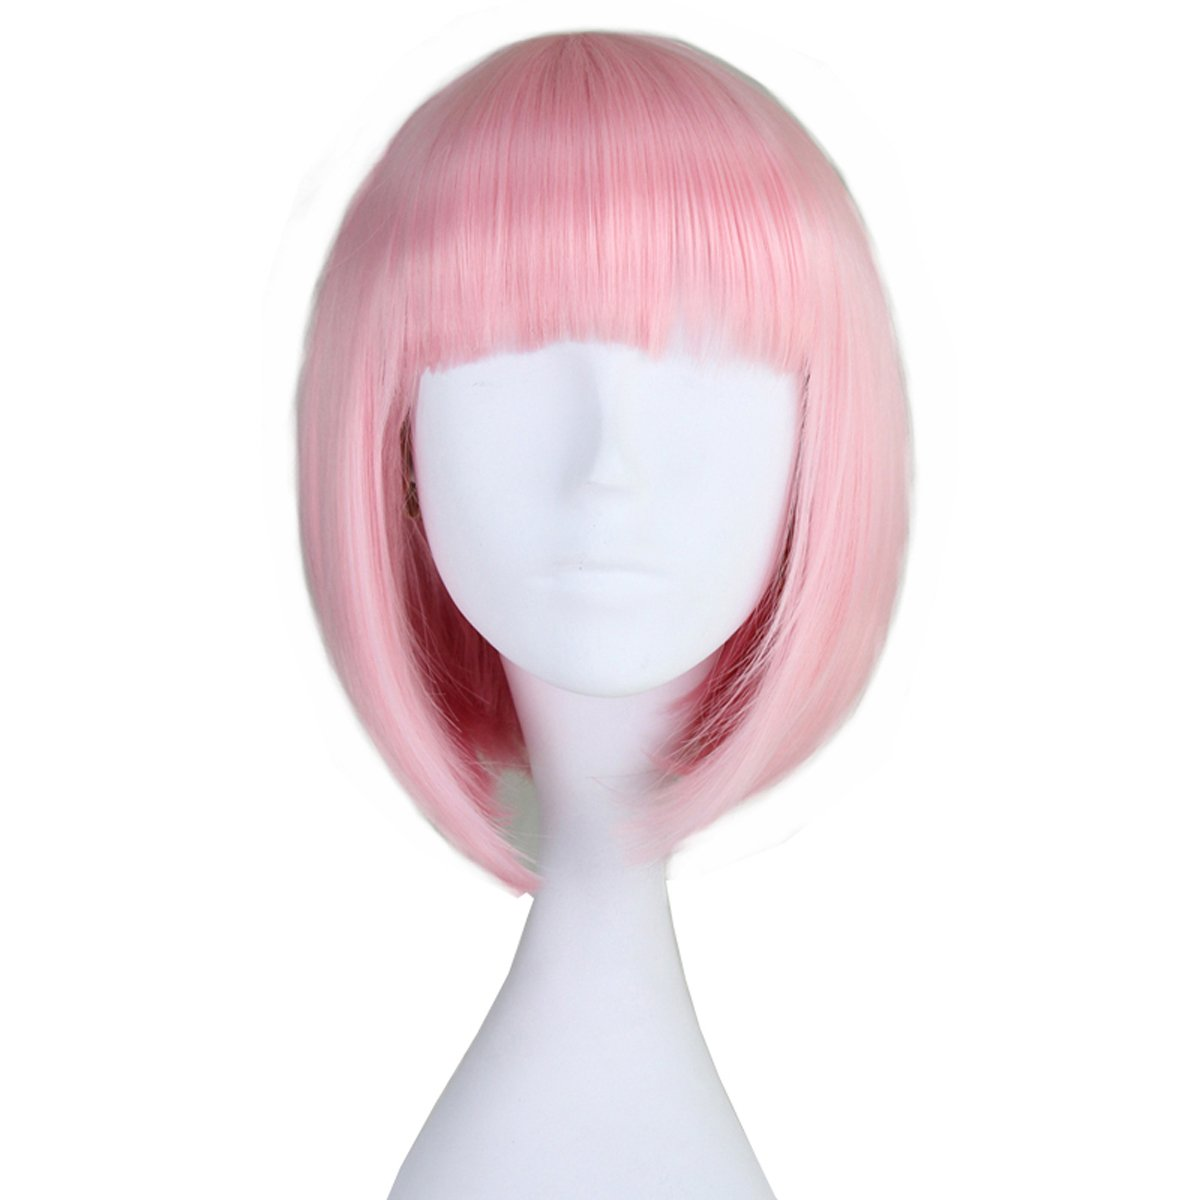 Miss U Hair Girl's Short Straight Harajuku Style Women Bobo Hair Anime Cosplay Party Wig (White) Generic C372-A05